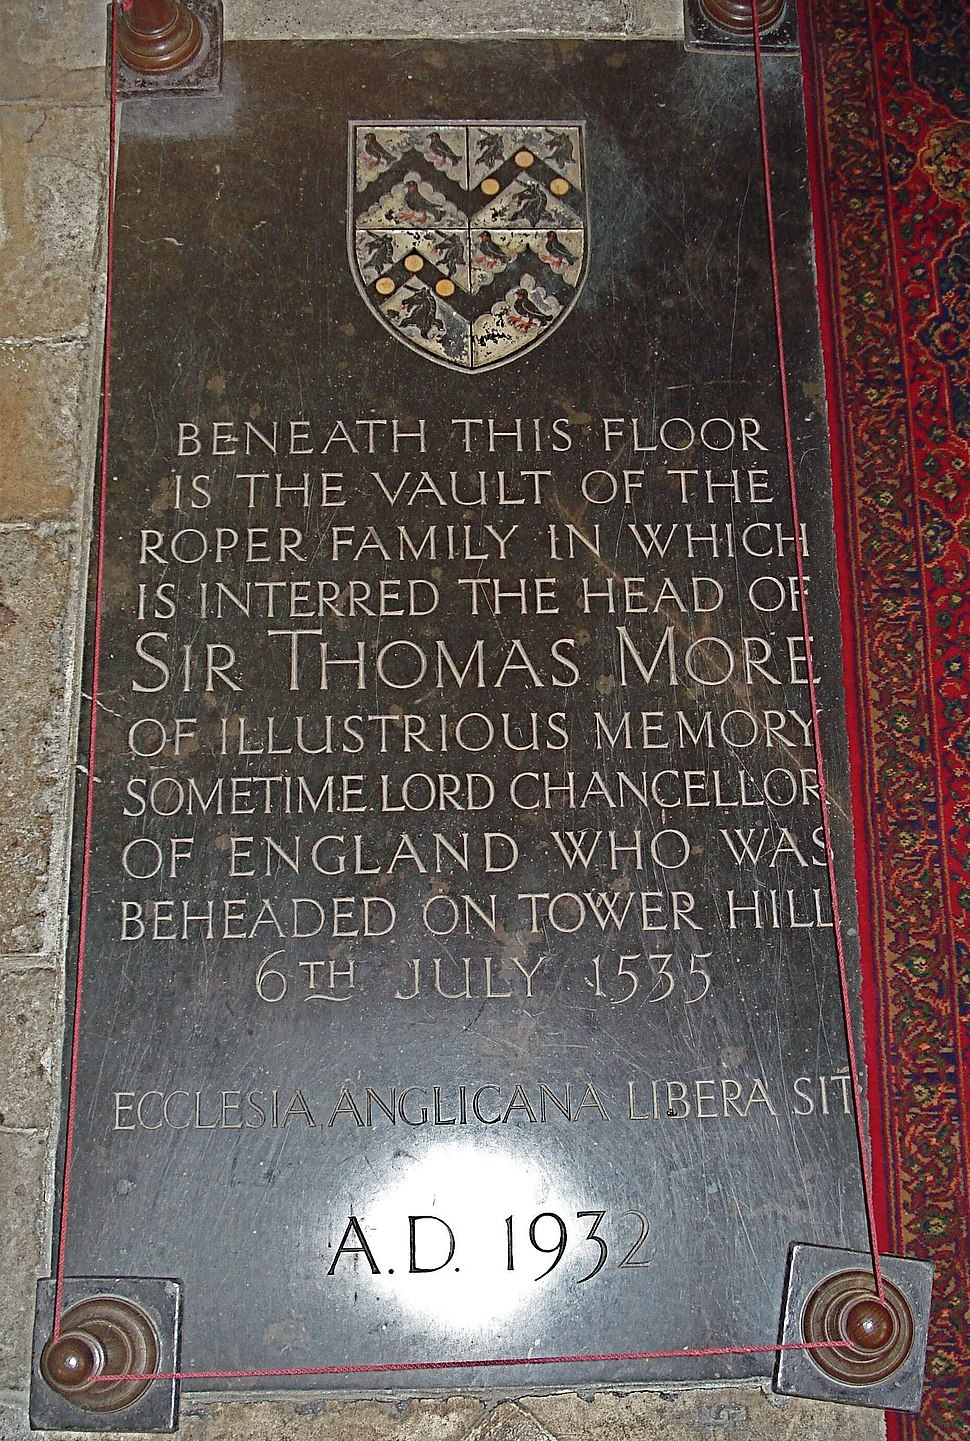 Sir Thomas More family's vault in St Dunstan's Church (Canterbury)